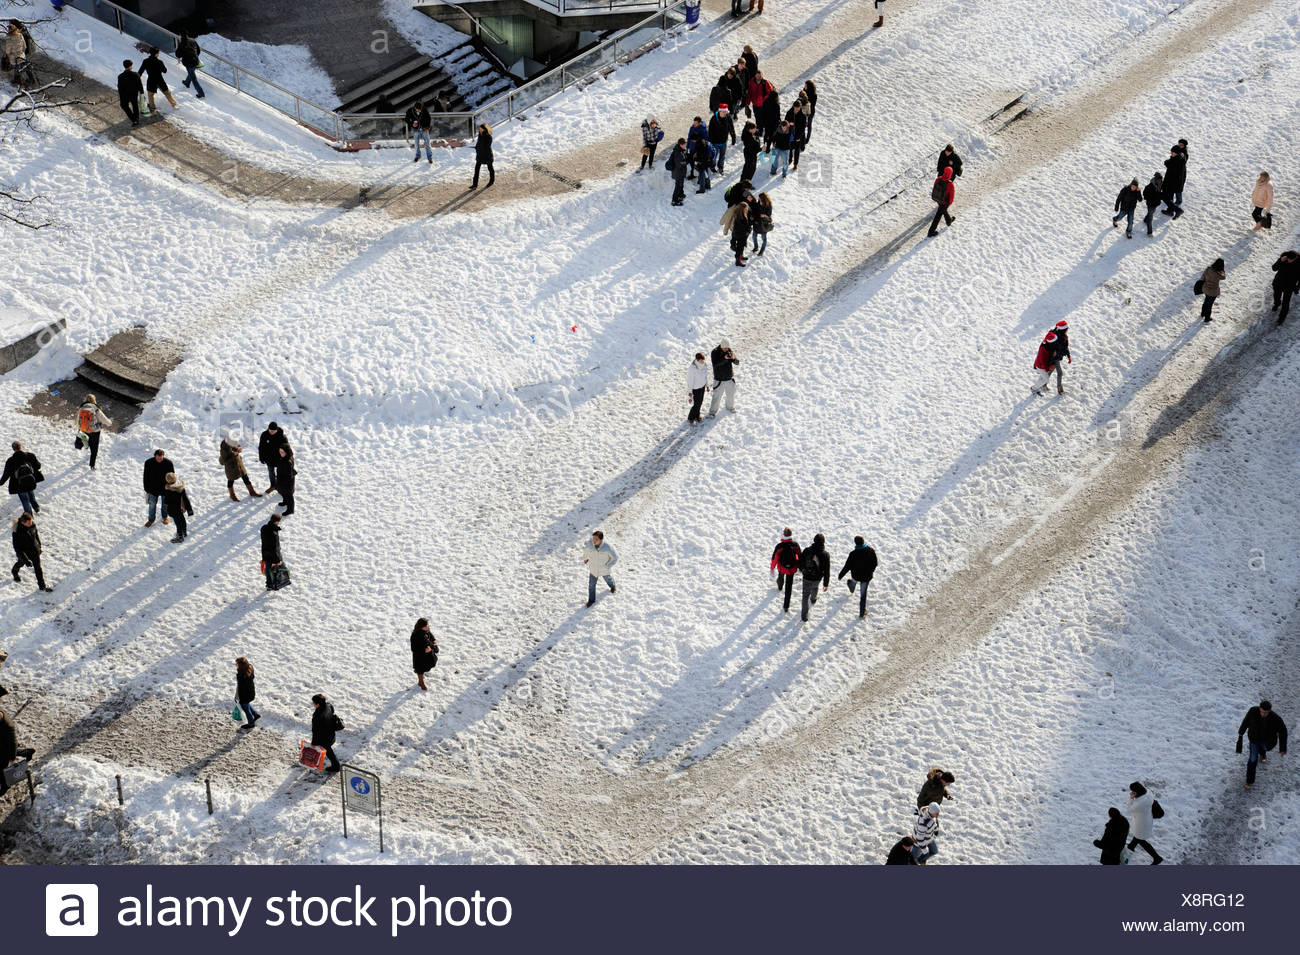 People walking in the snow near the Hauptwache, a former guard-house, in winter, Frankfurt am Main, Hesse, Germany, Europe Stock Photo